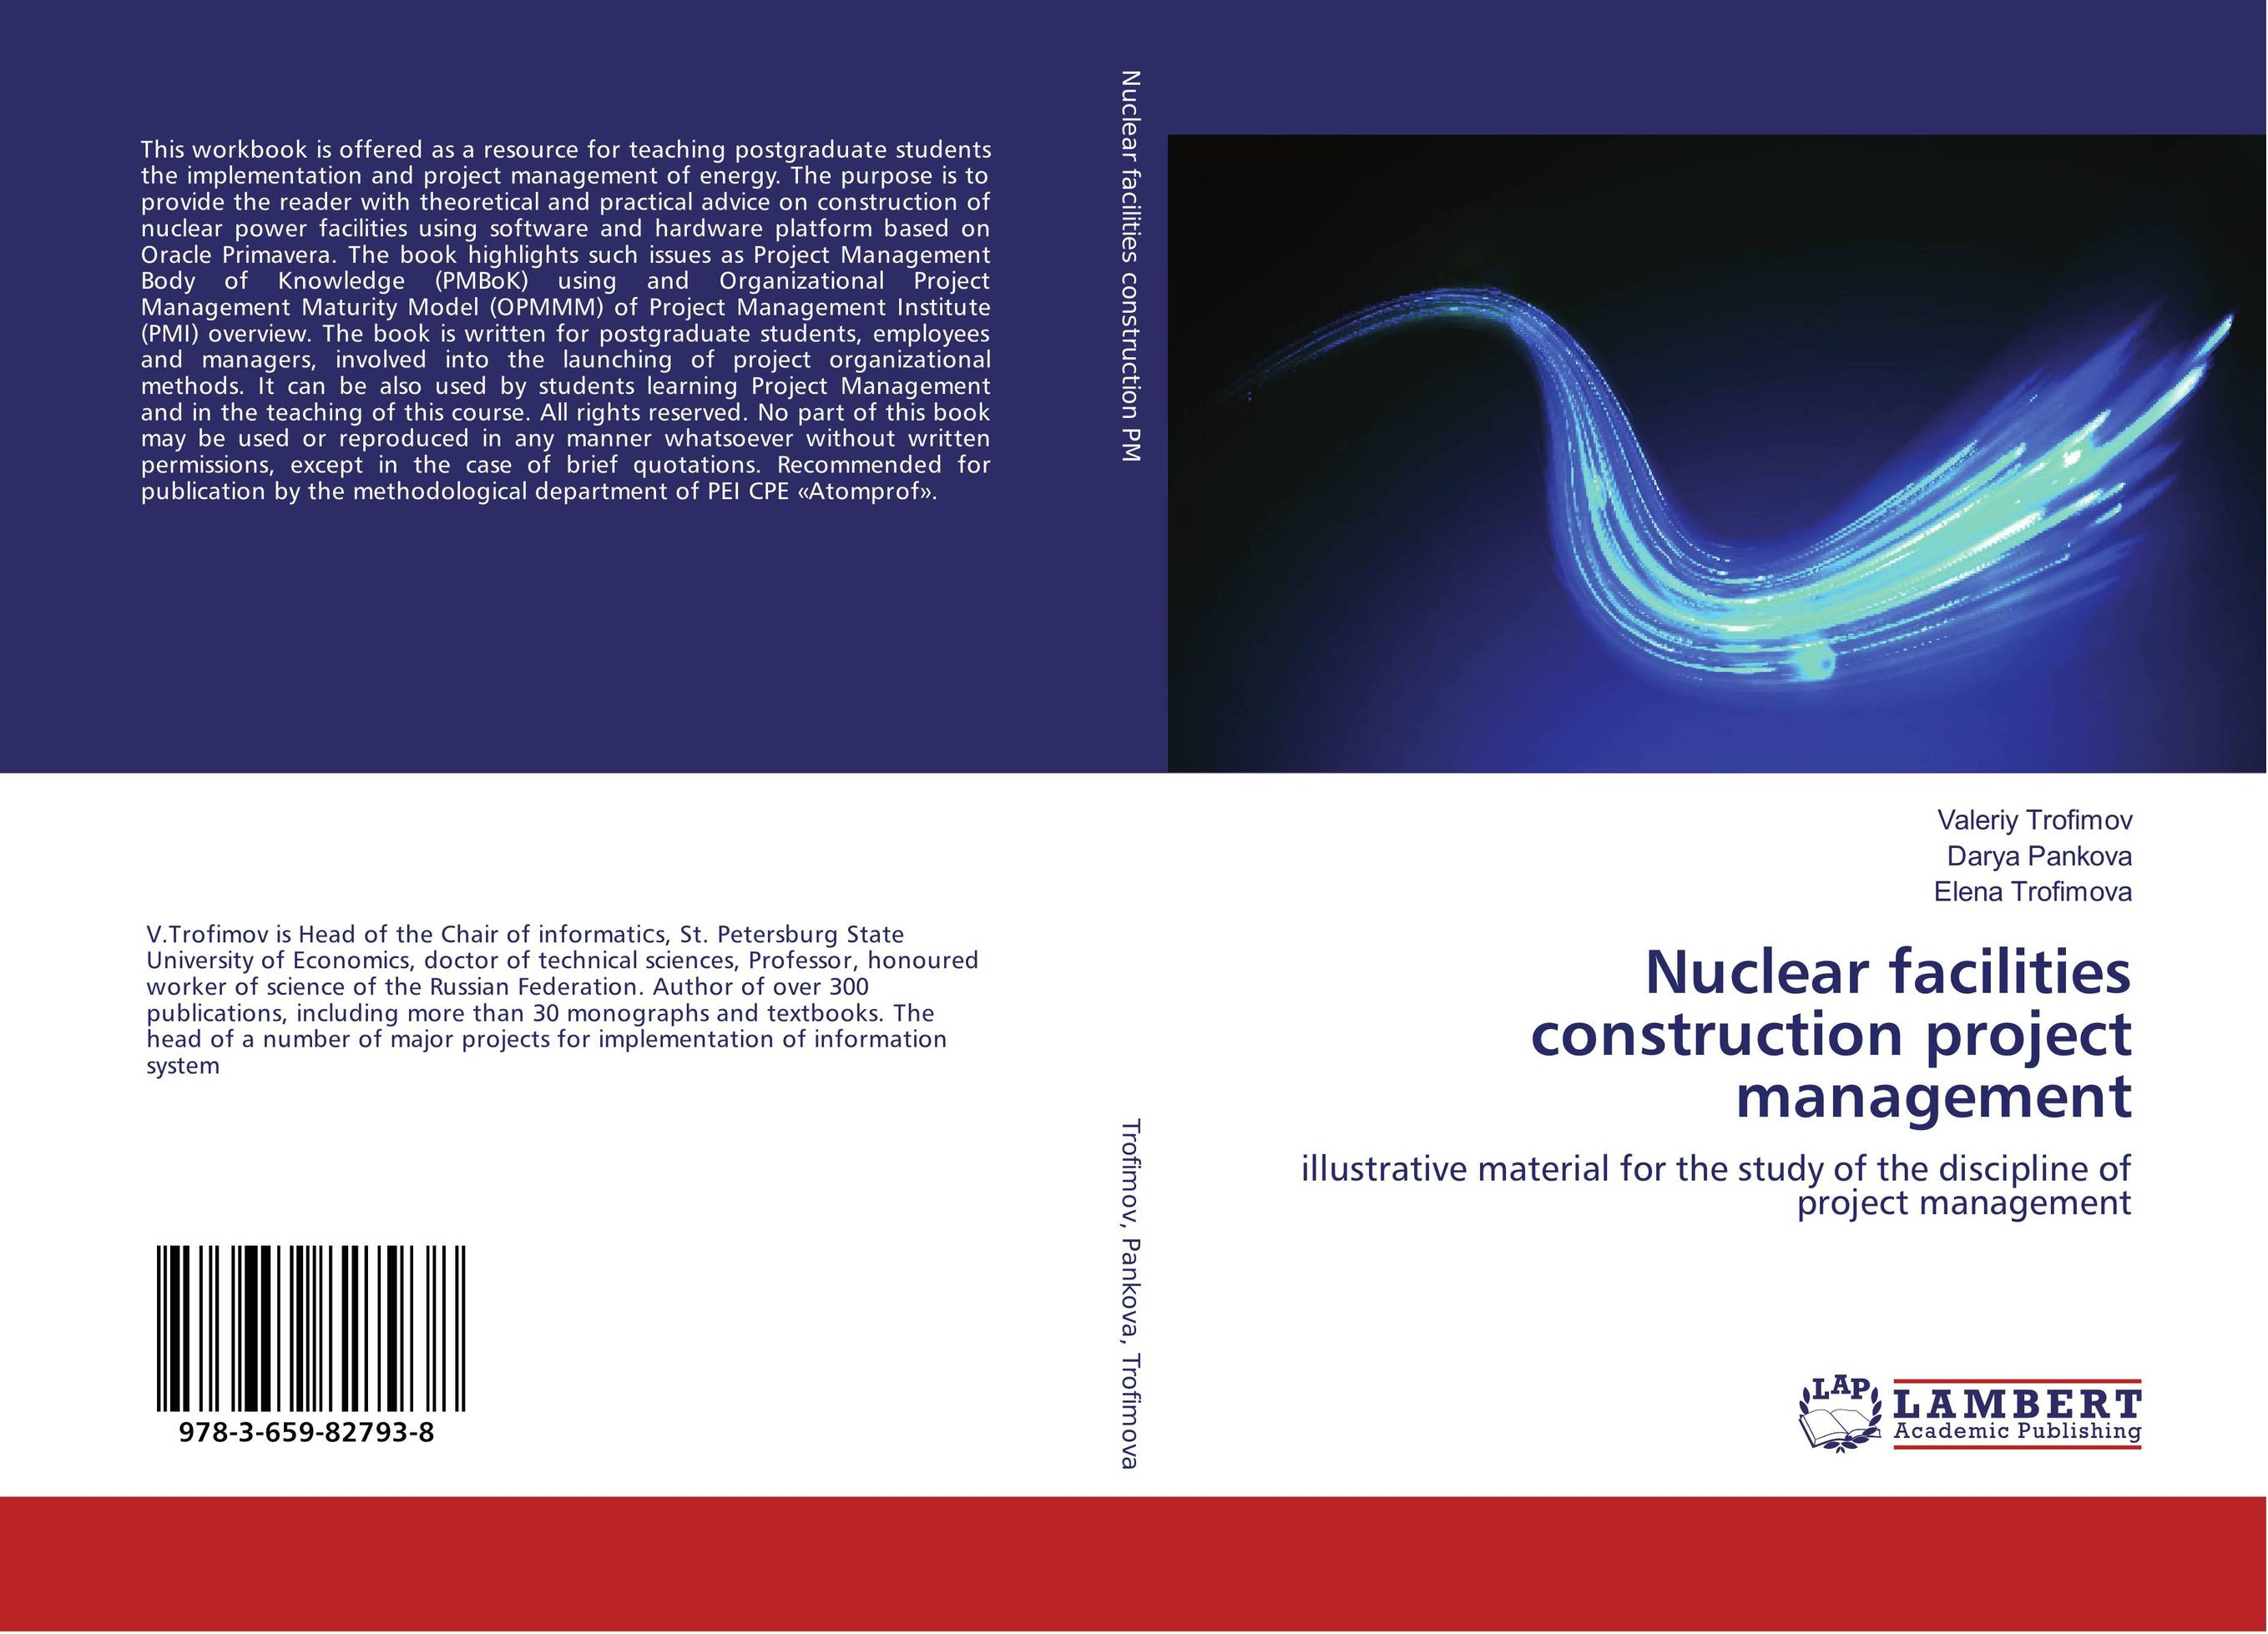 Nuclear facilities construction project management project management for energy efficient houses in mongolian climate